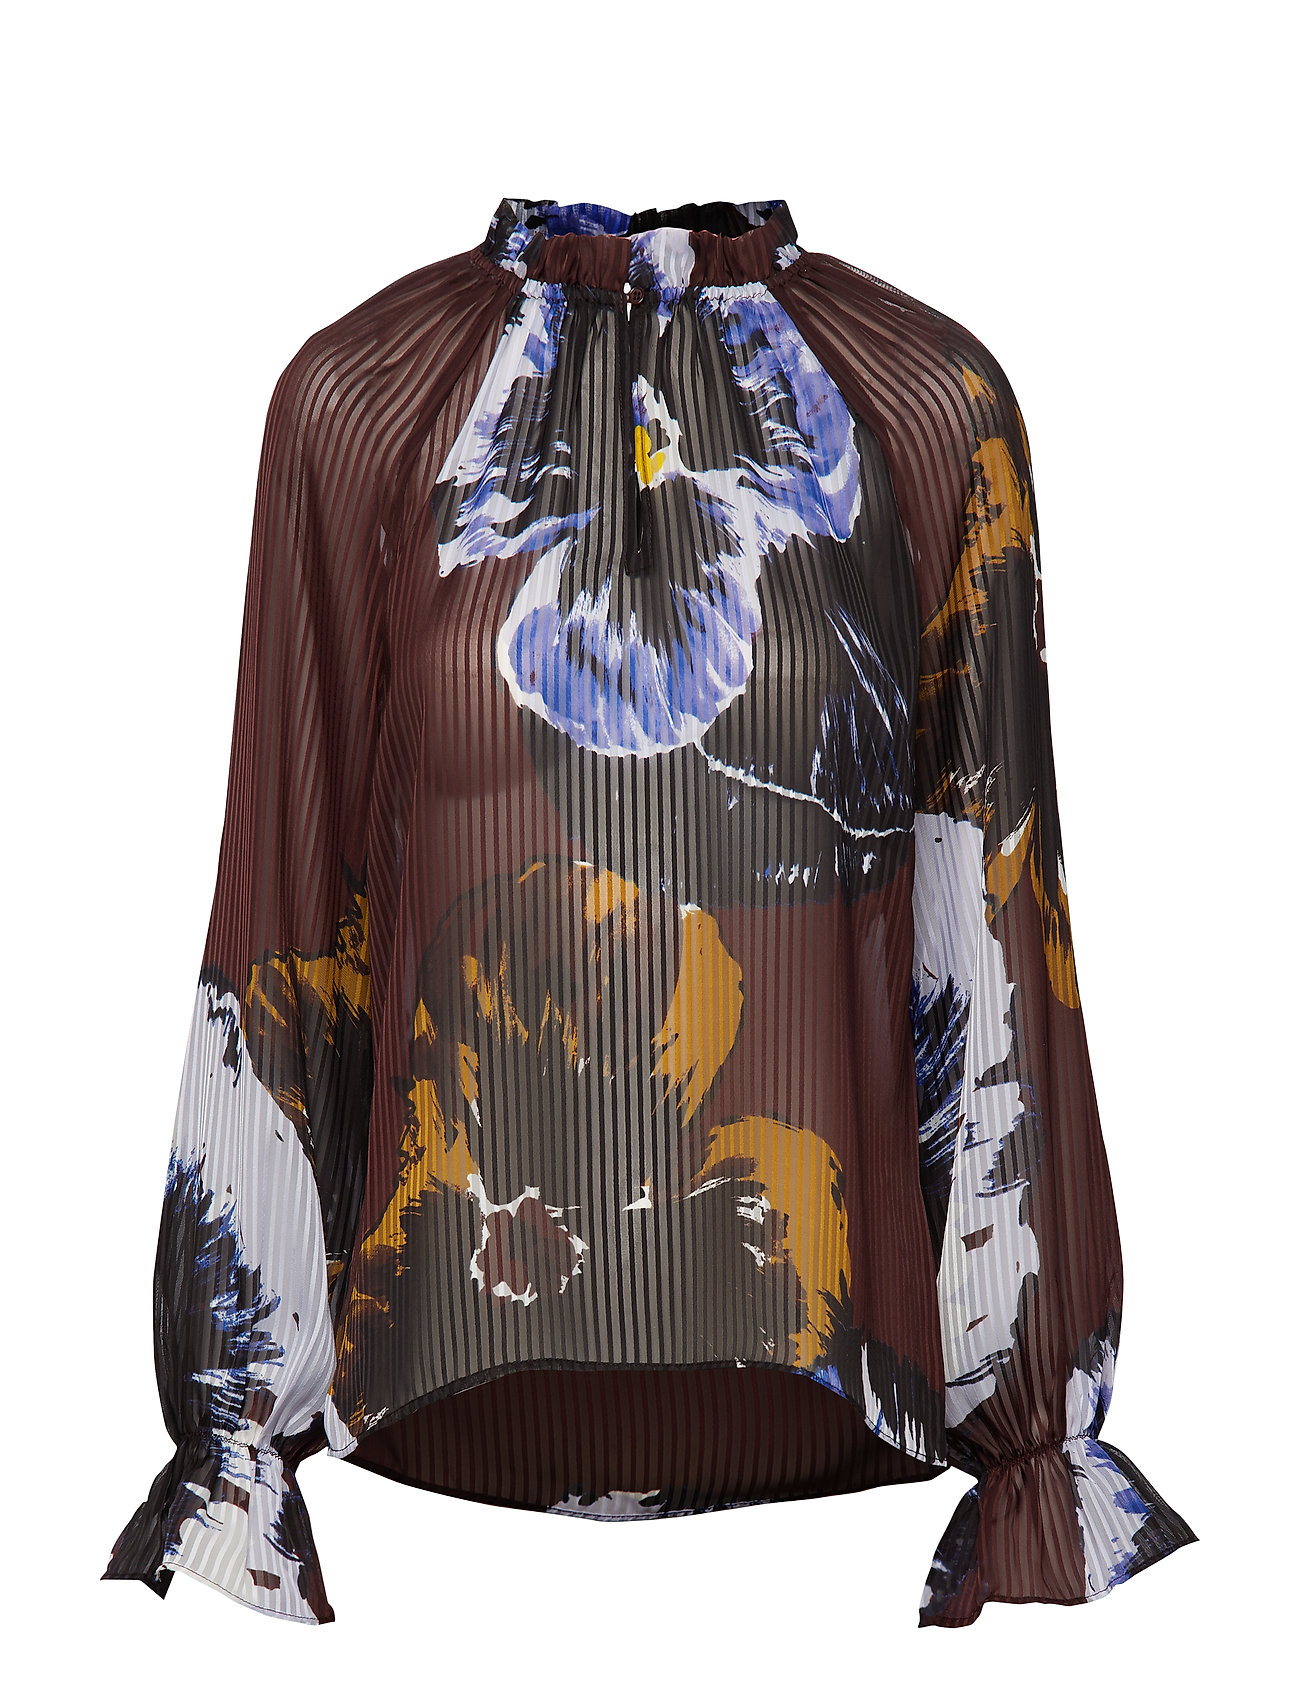 InWear KalistaIW Blouse - BITTER CHOCOLATE PANSY FLOWER